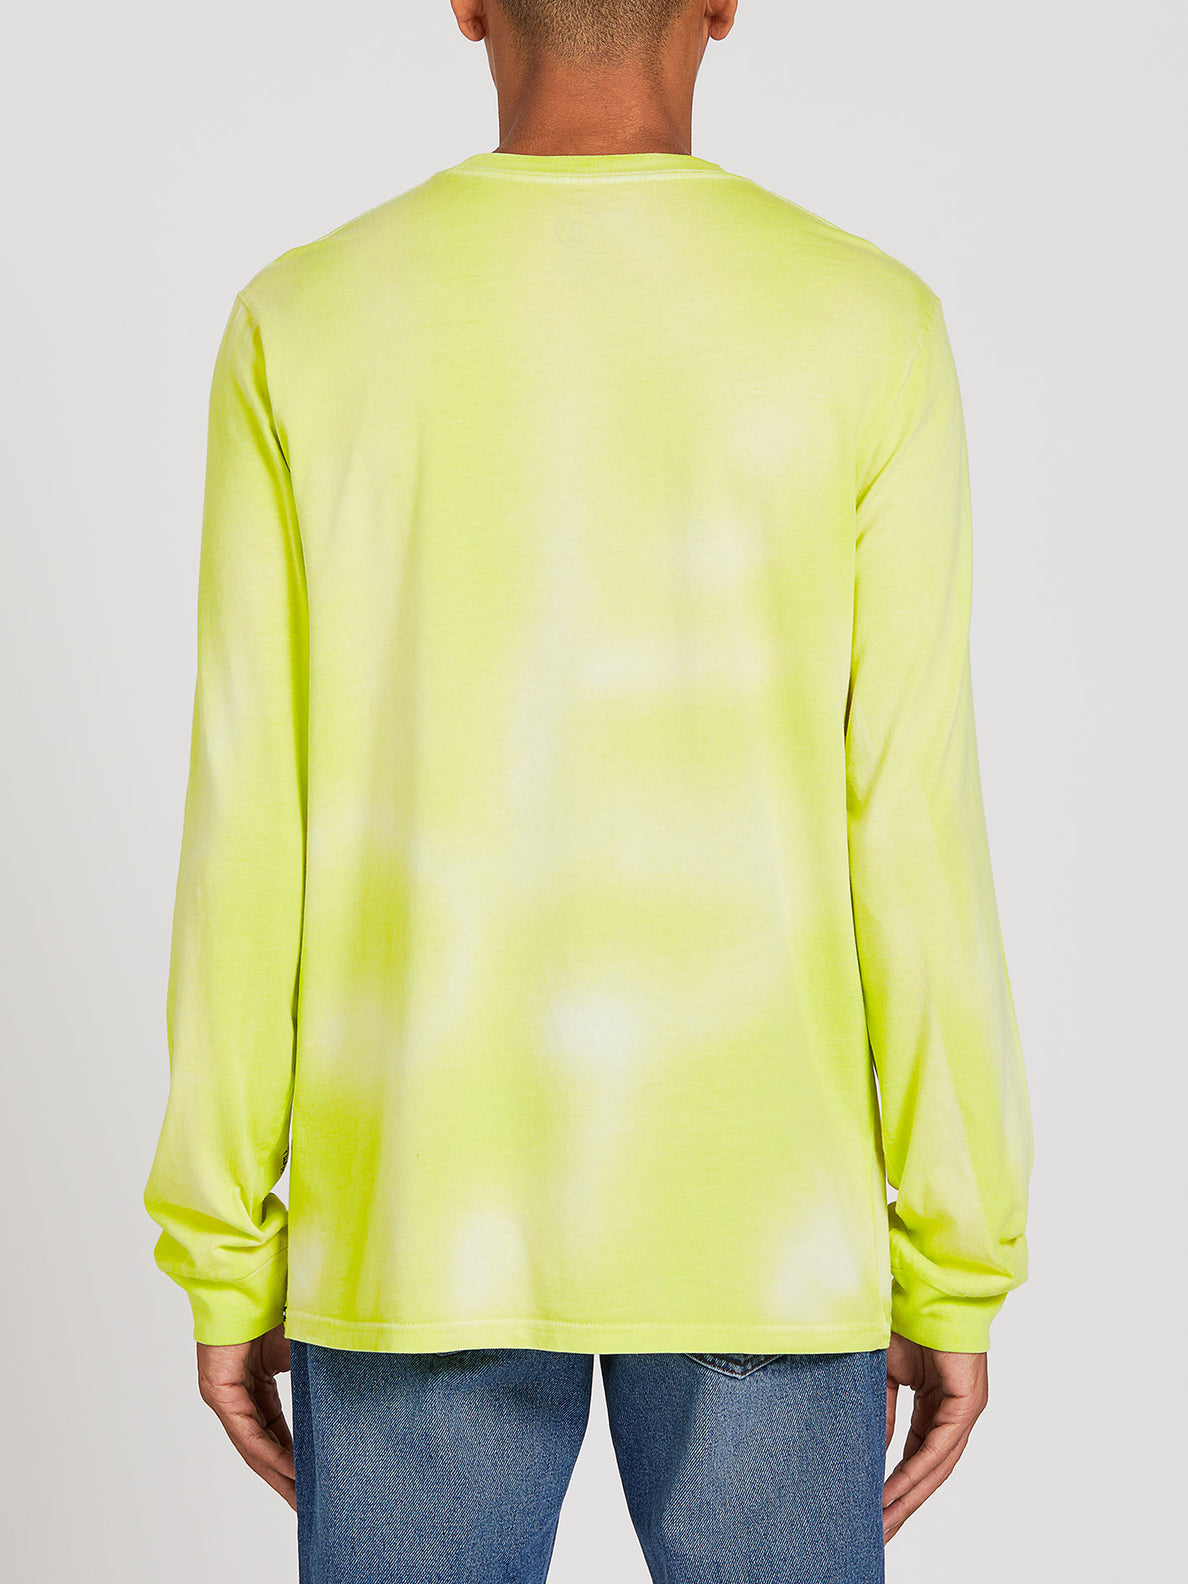 Burch Long Sleeve Tee - Hilighter Green (A3622001_HIG) [B]